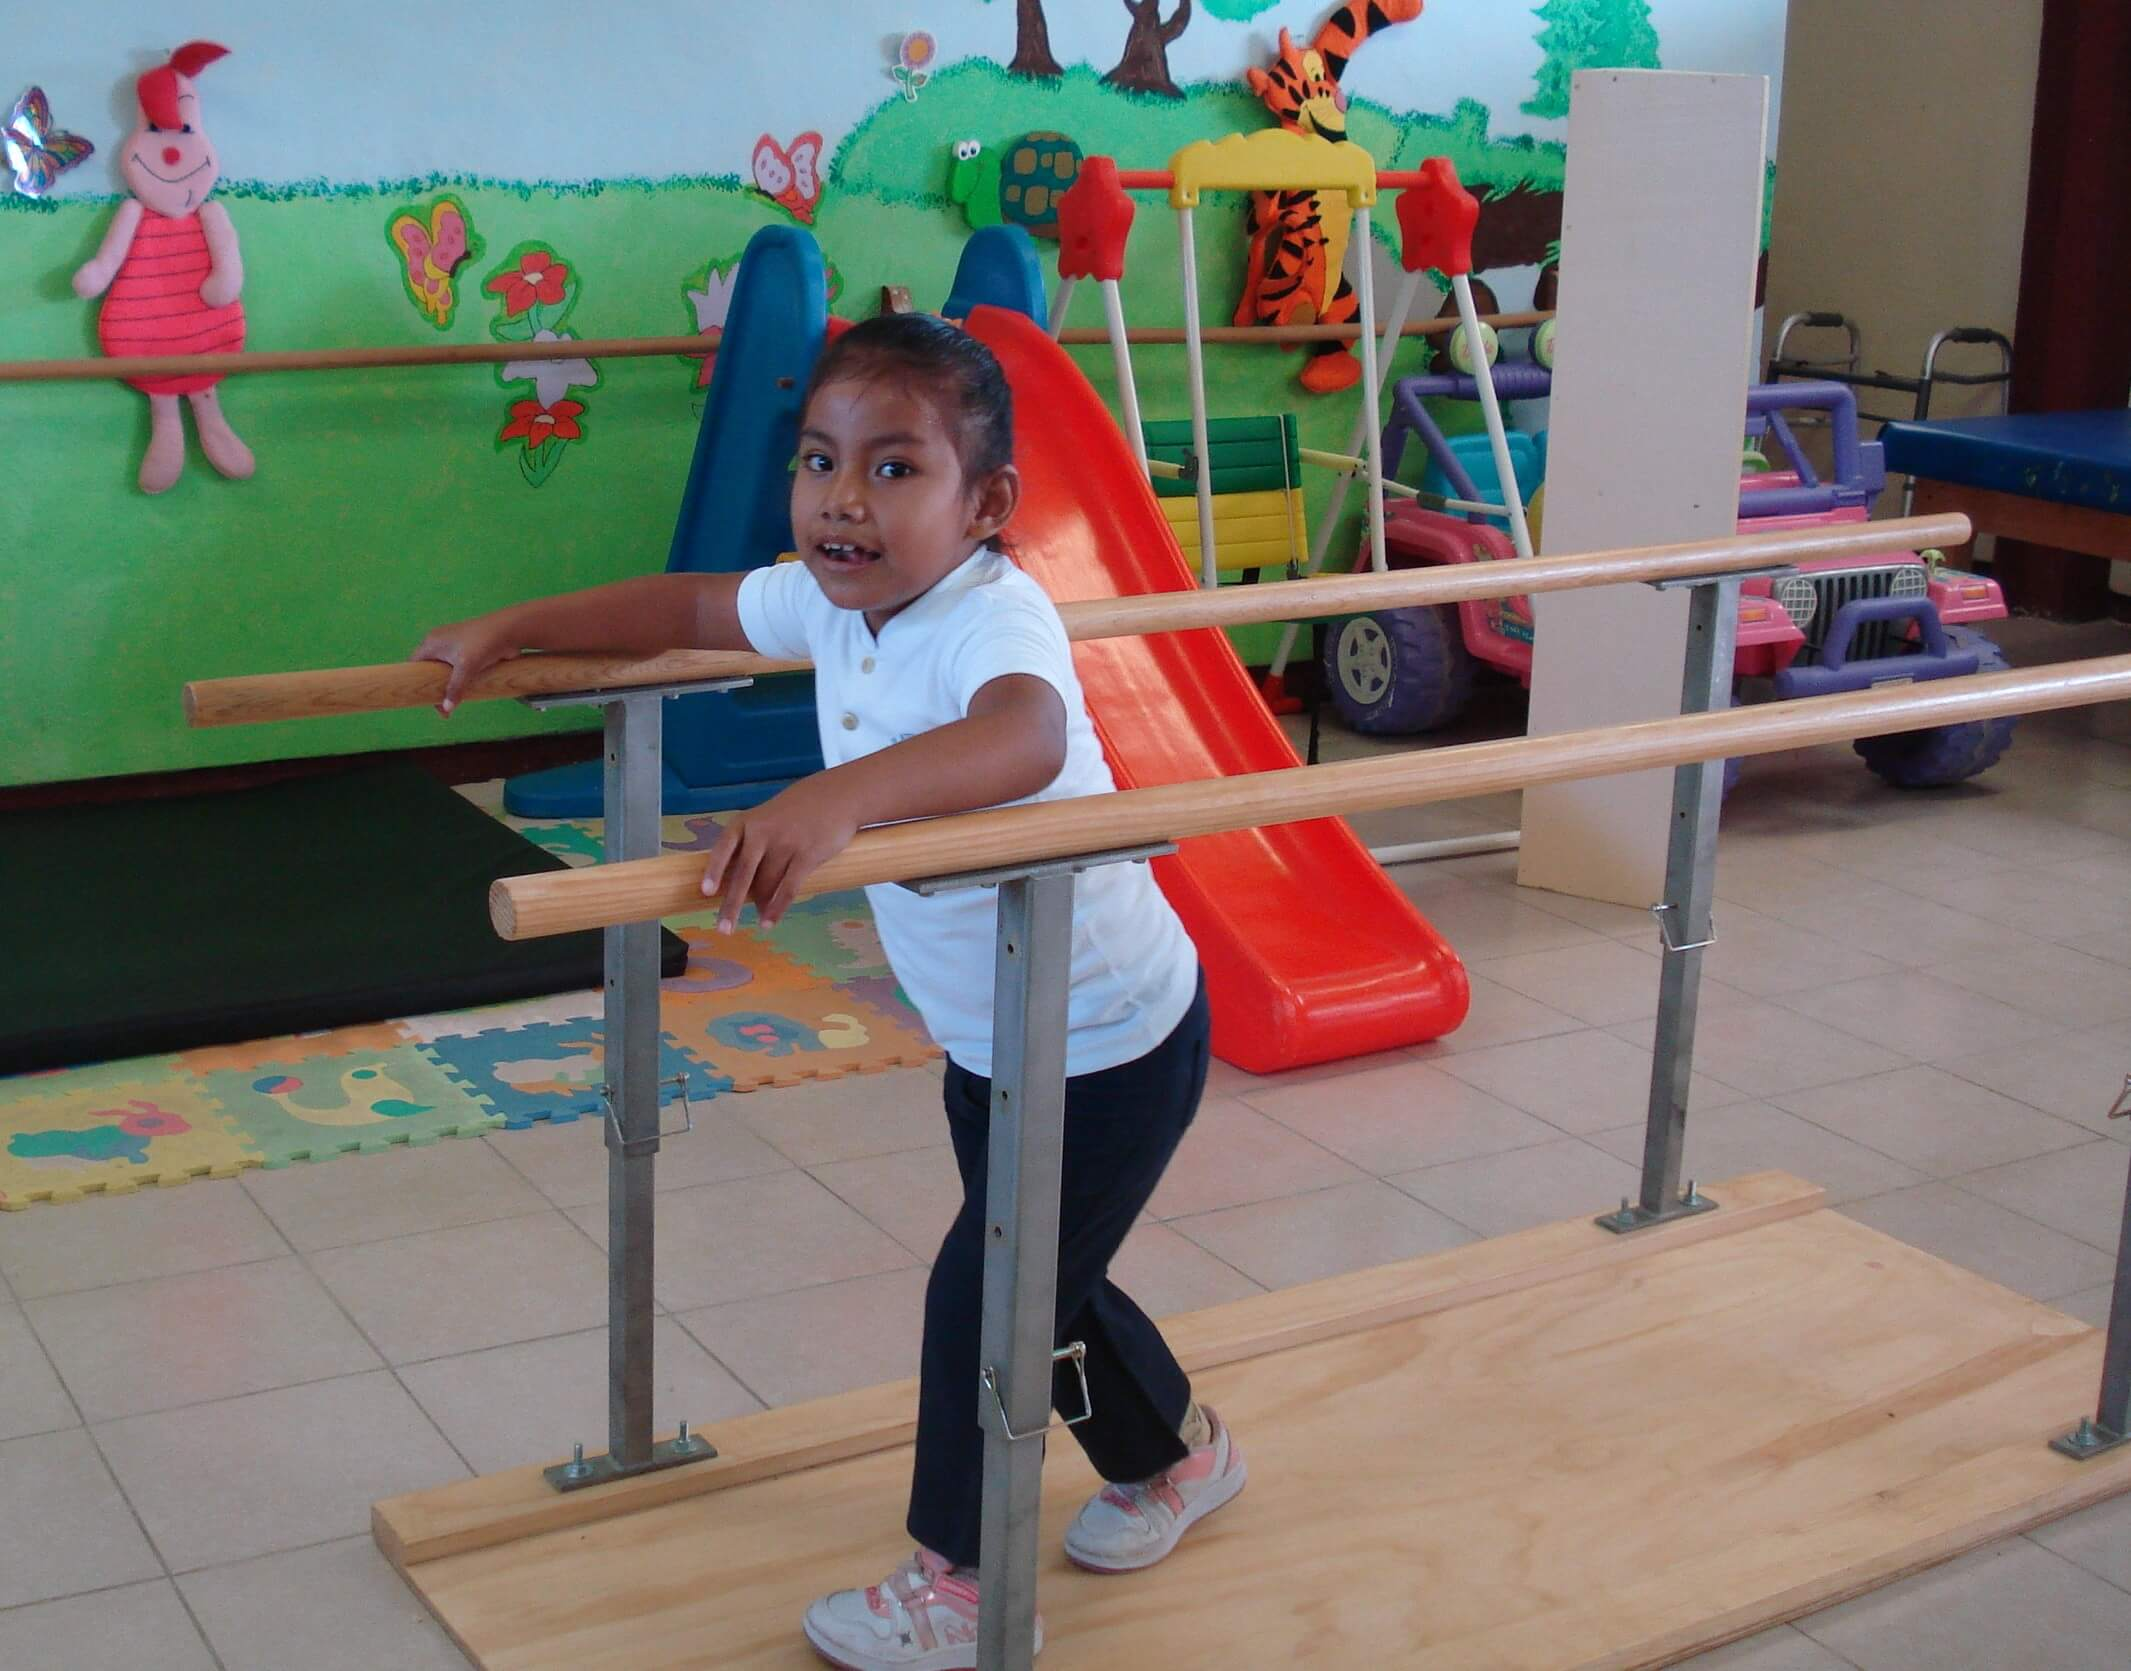 walking parallel bars mainan anak mainan edukatif ape drumband